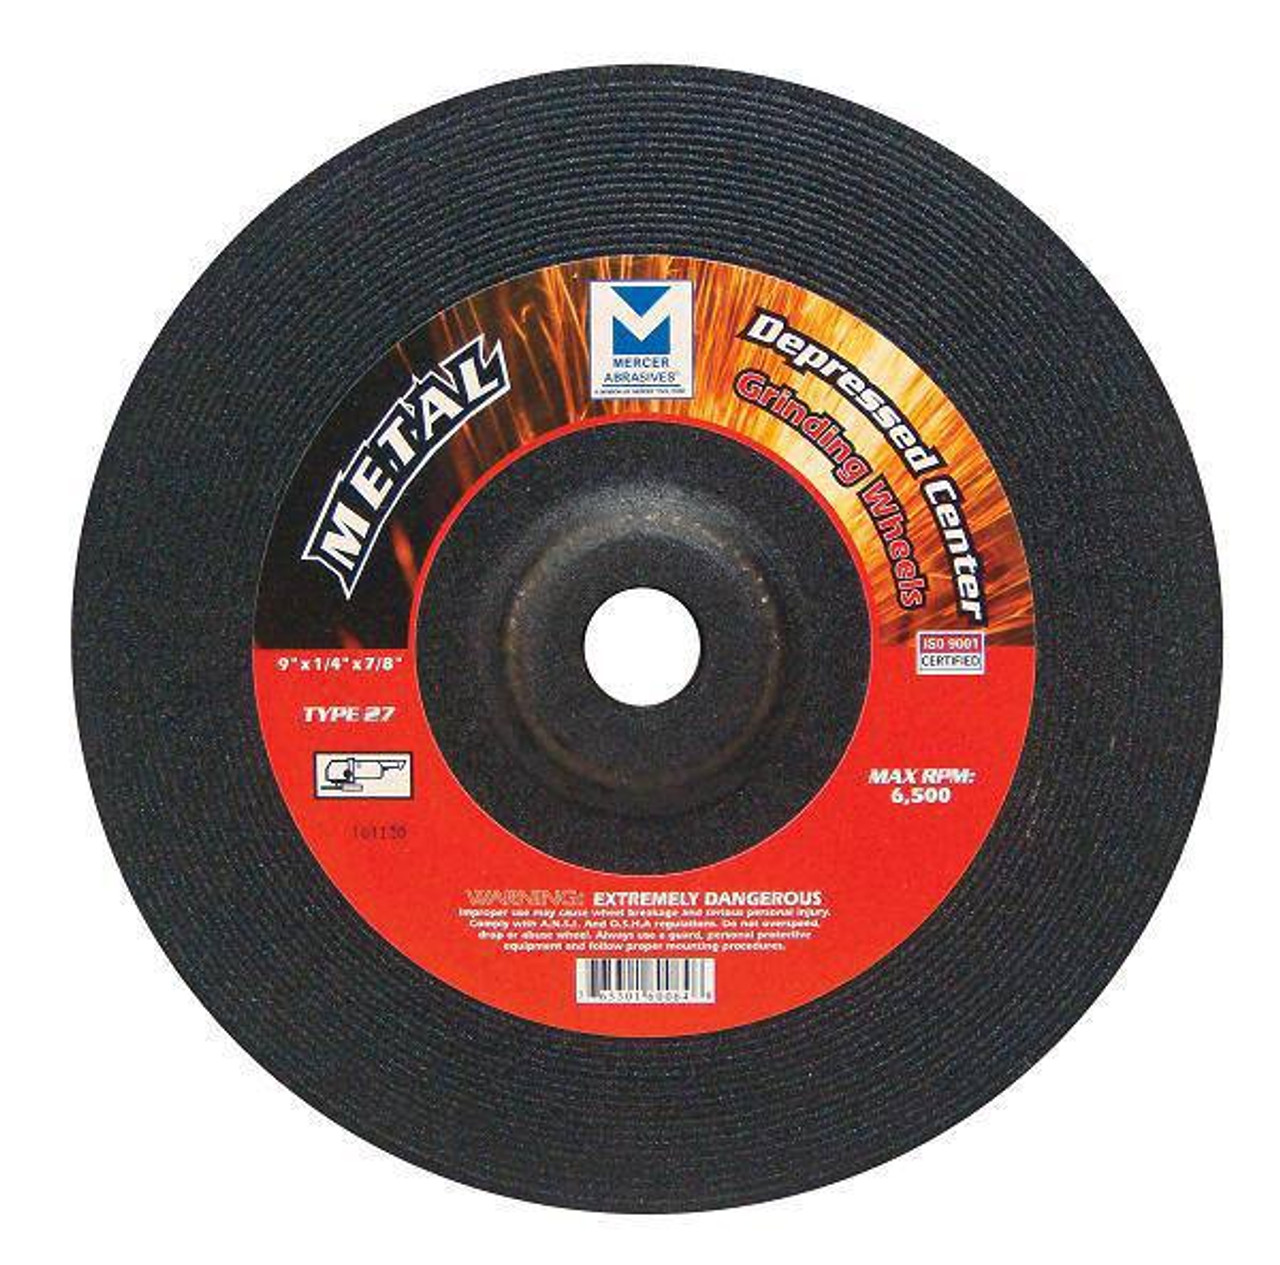 """10 Pro 9-inch x1//4/""""x7//8/"""" Metal Grinding Wheel Angle Grinder Tool Disc Type 27"""